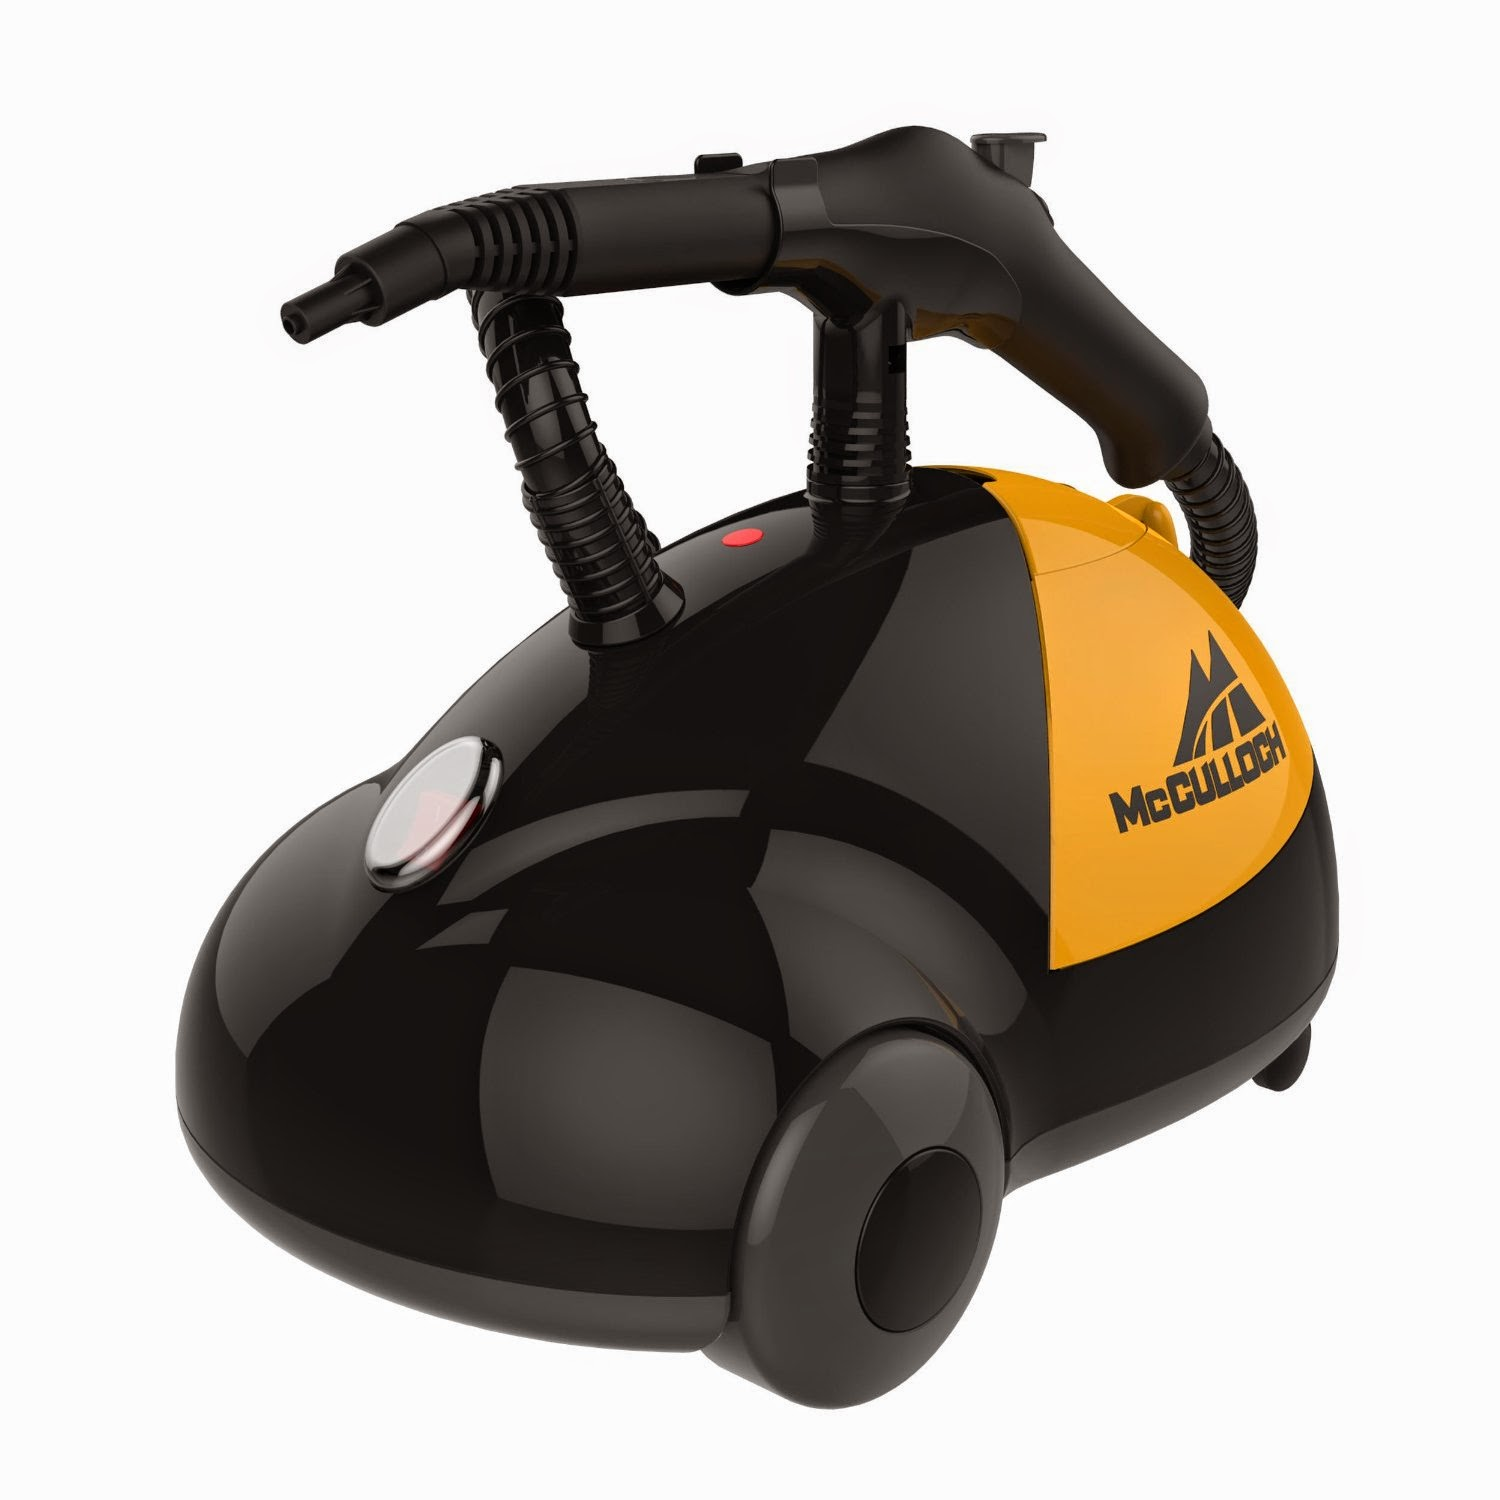 Duty Steam Cleaner